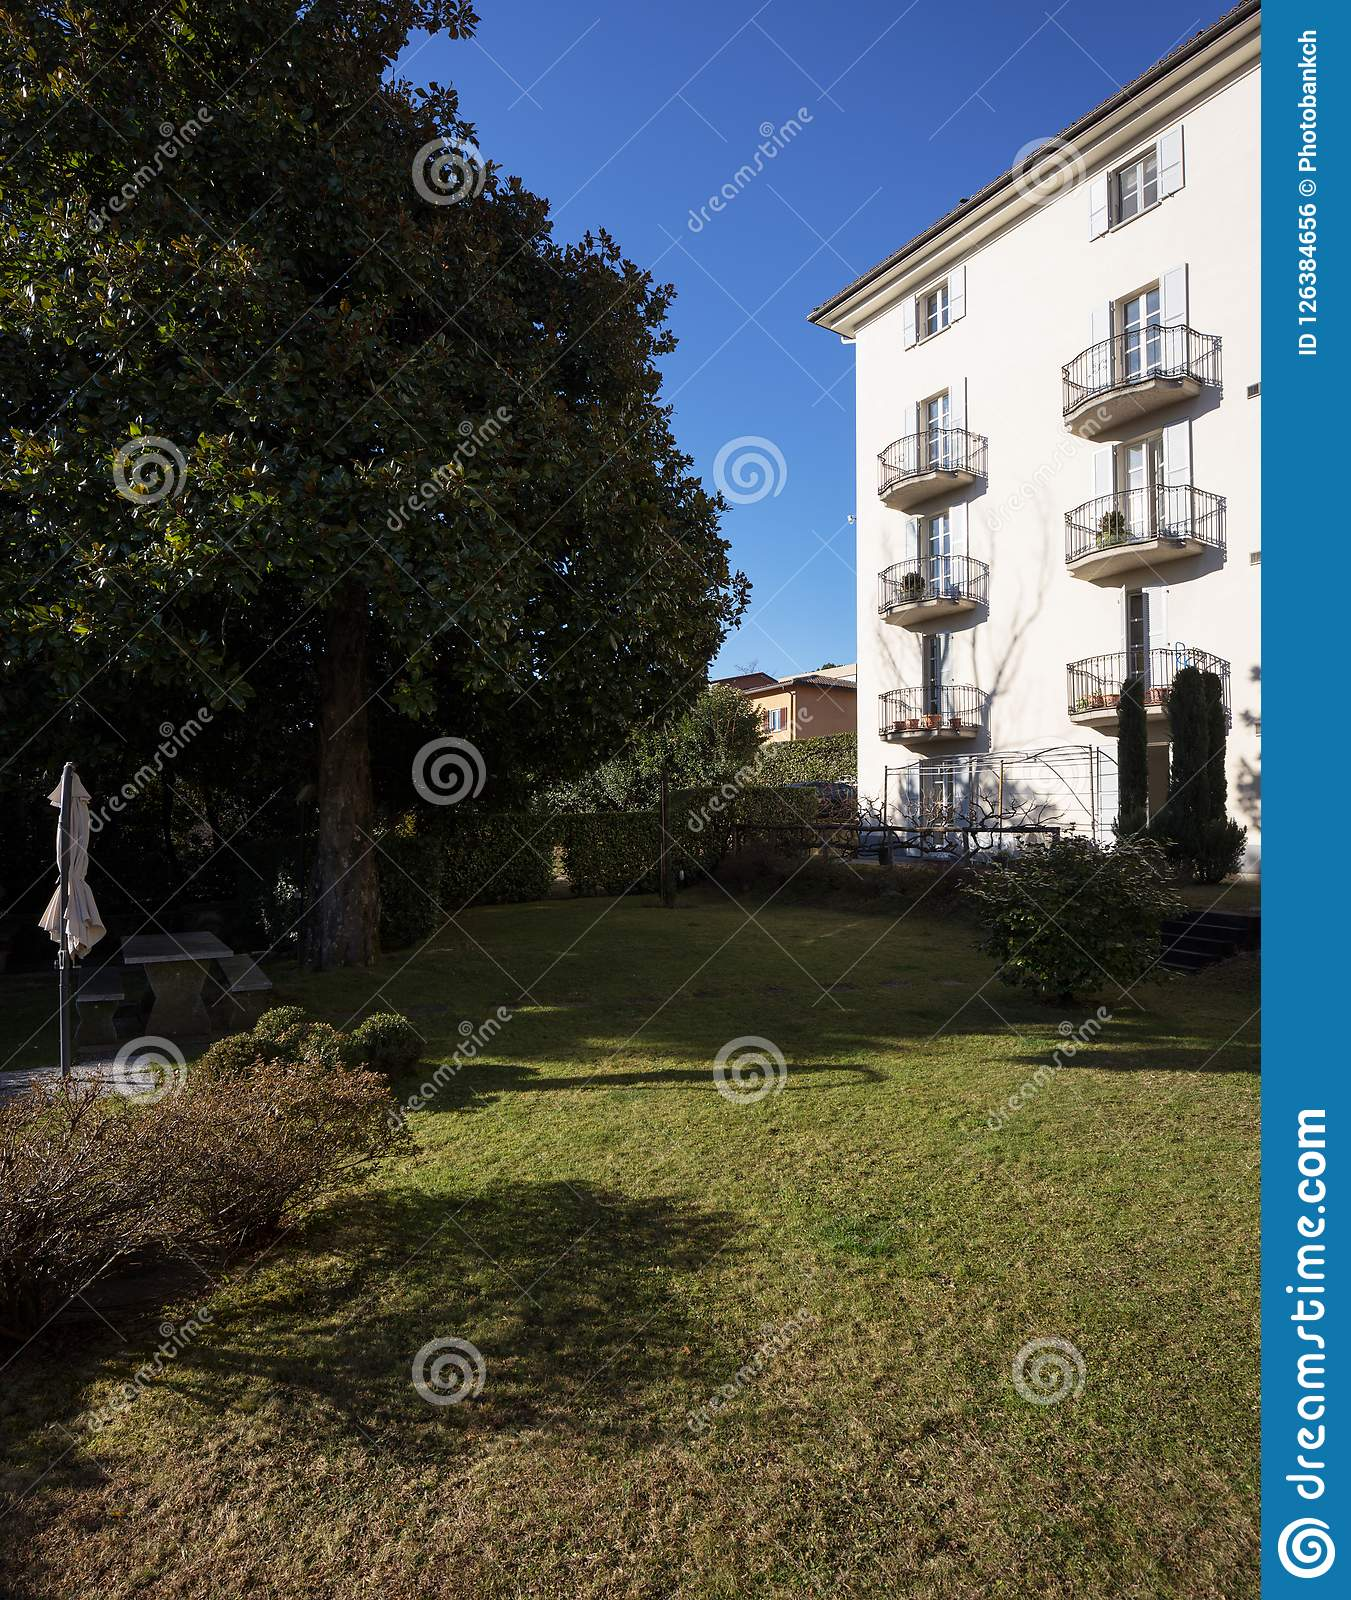 Download Back Of The House, Garden With Green Lawn Stock